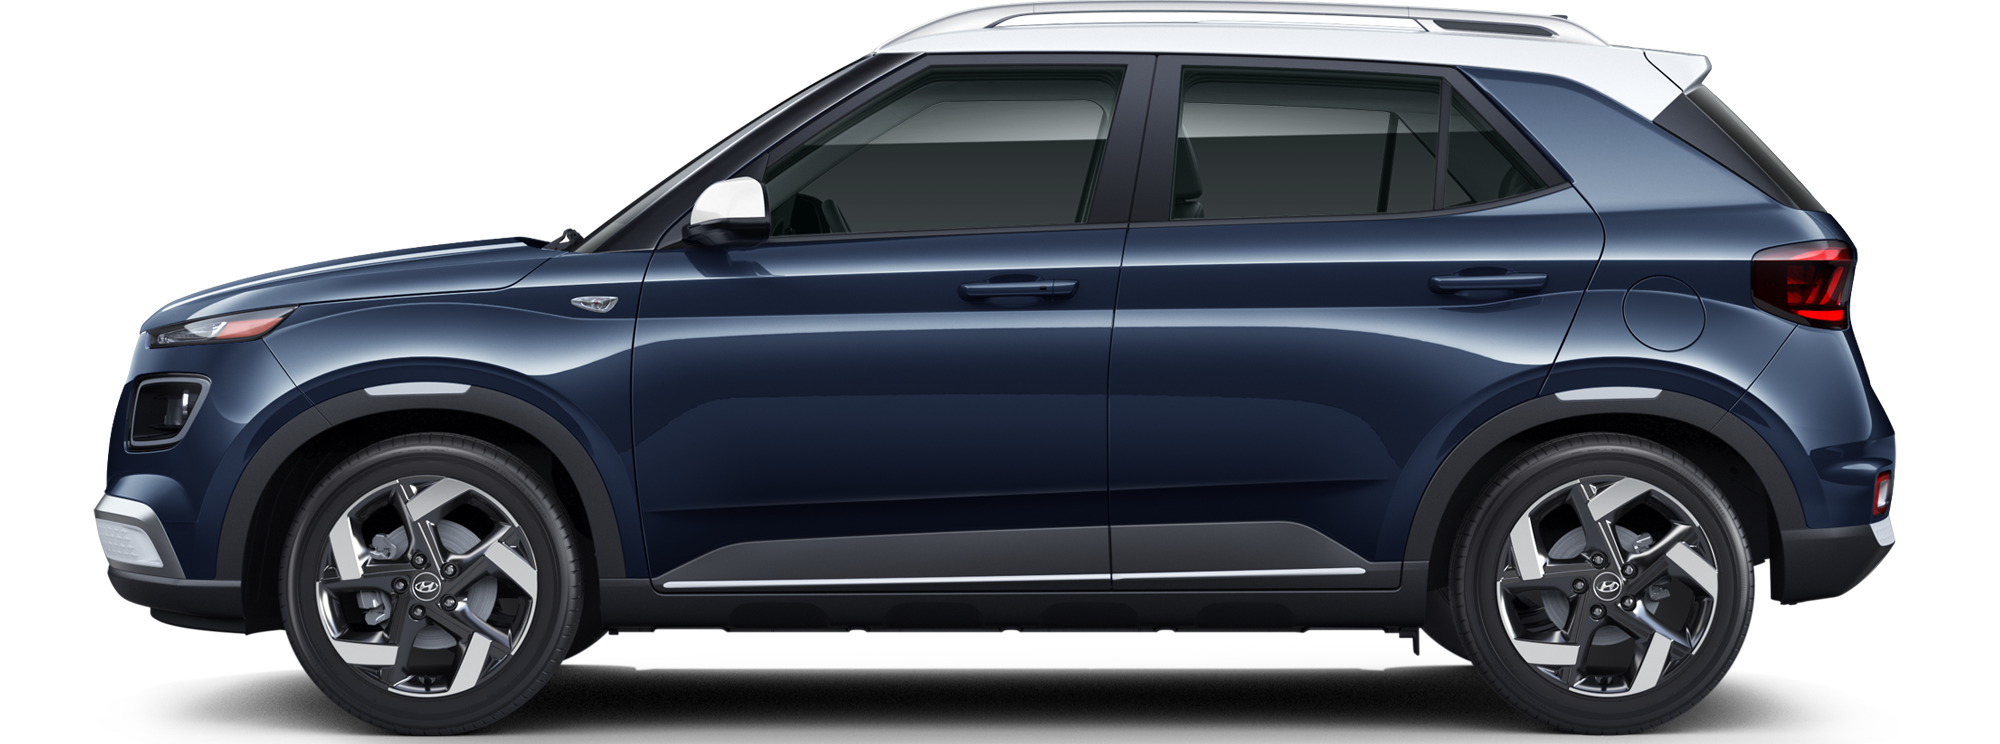 2021 Hyundai Venue SUV Denim